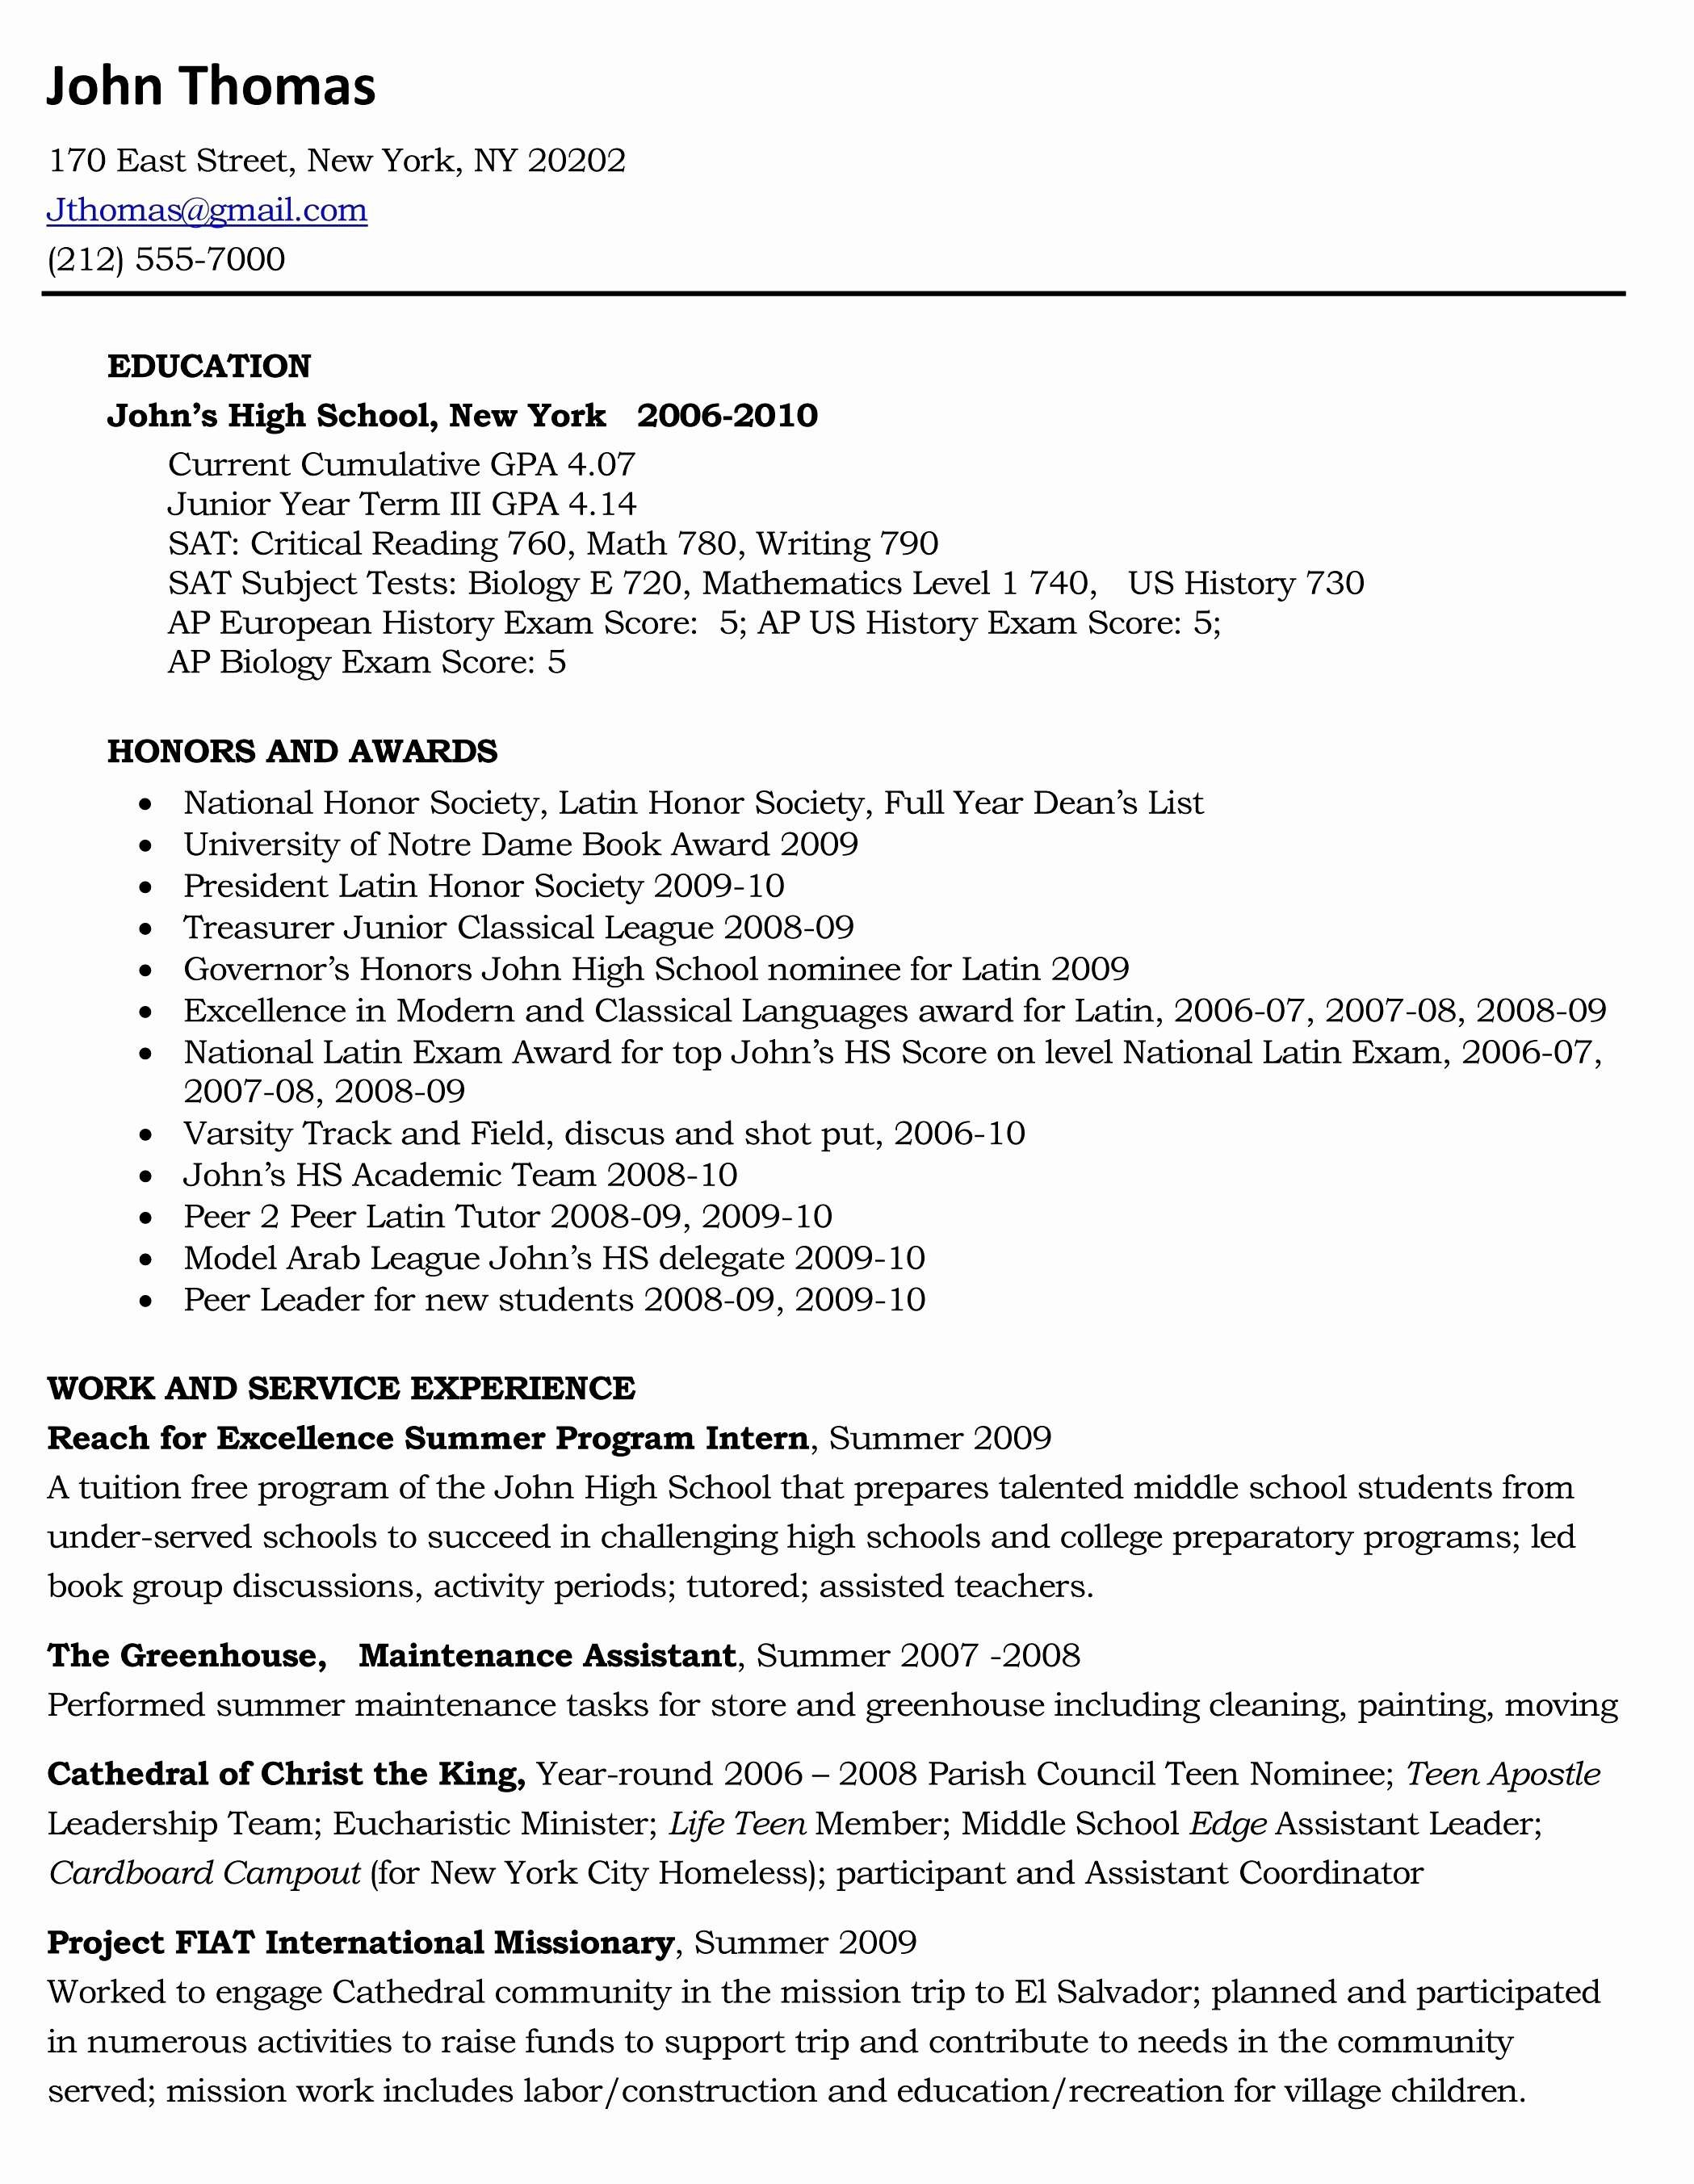 lawyer resume example-Cv Lawyer Resume Best Lawyer Resume New Example A Simple Resume Fresh formatted Resume 0d 9-g